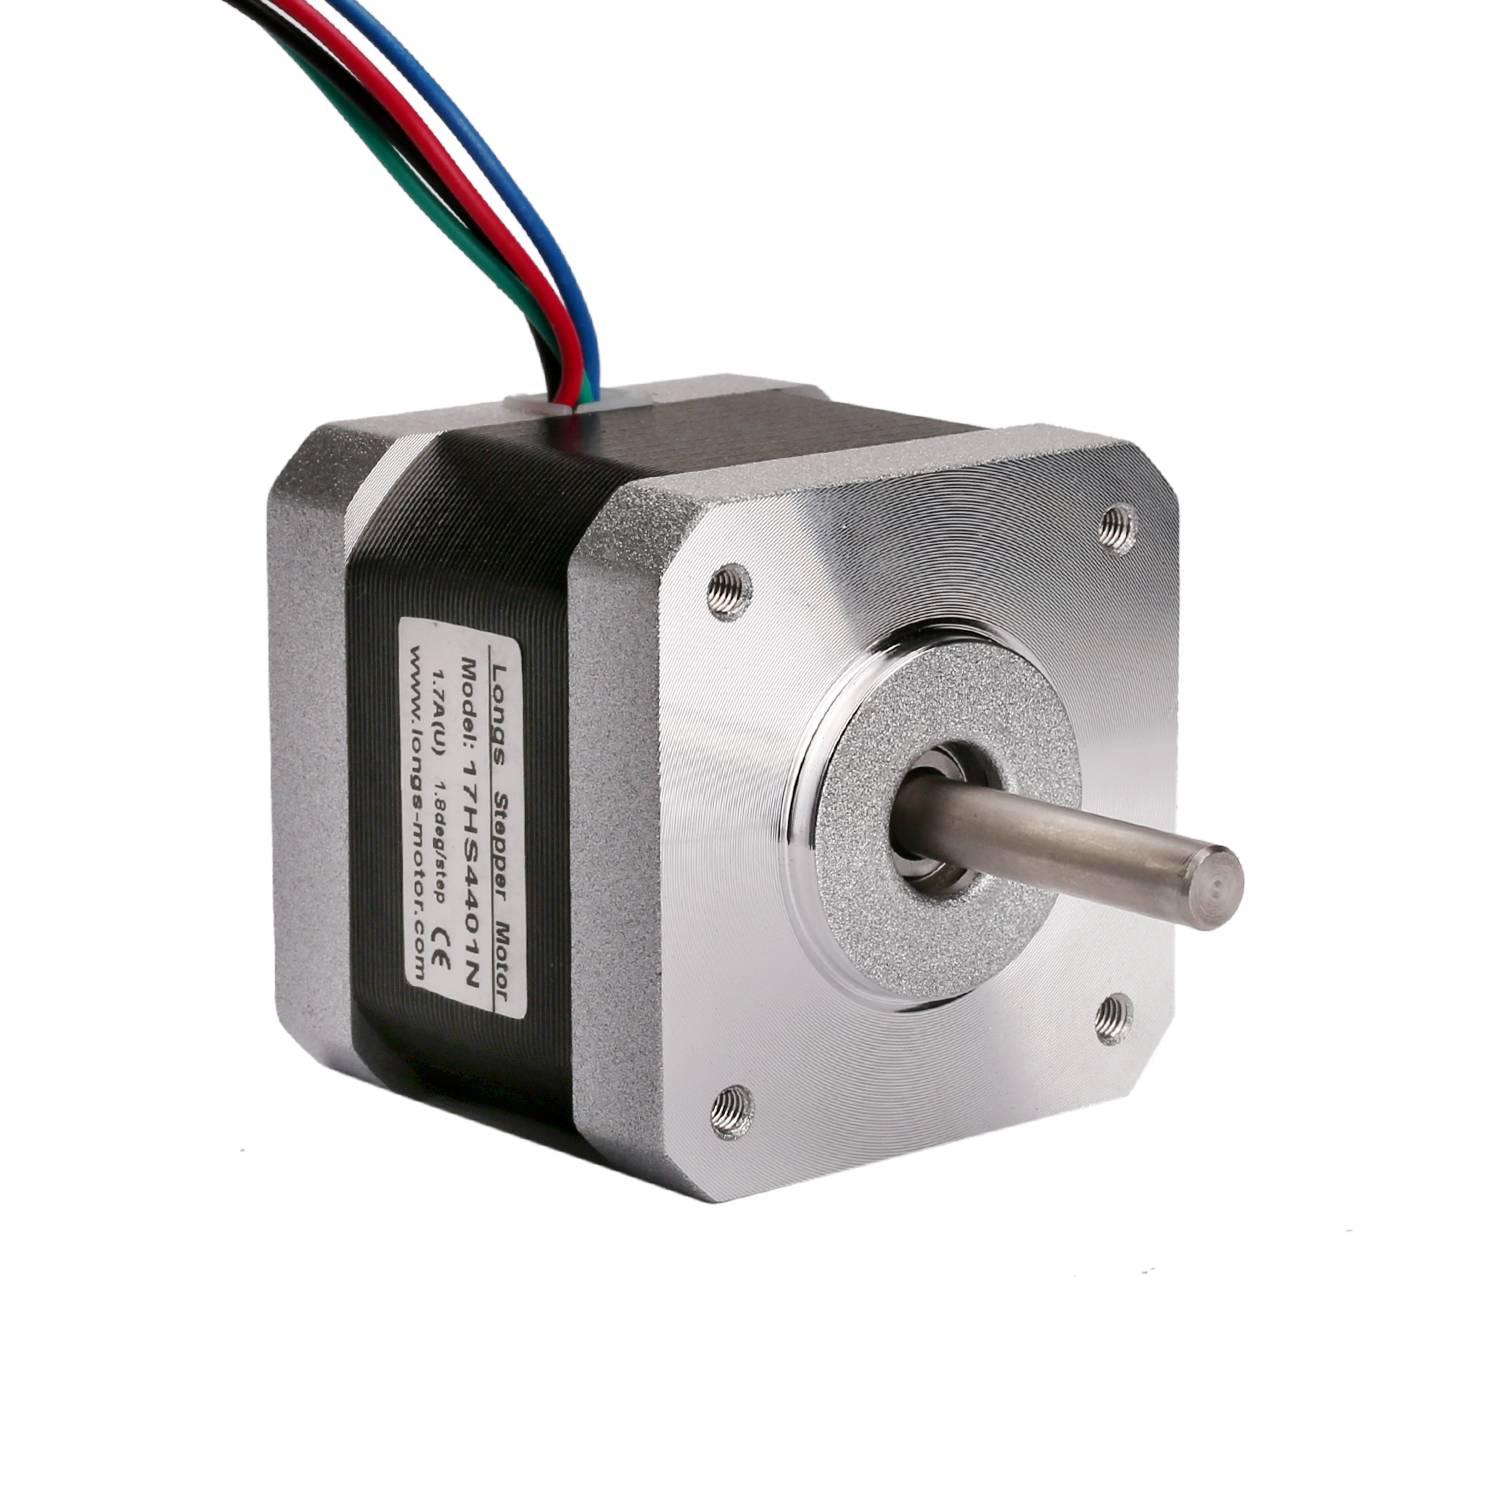 Hybride Stepper MOTOR-Nema17HS Featured Image